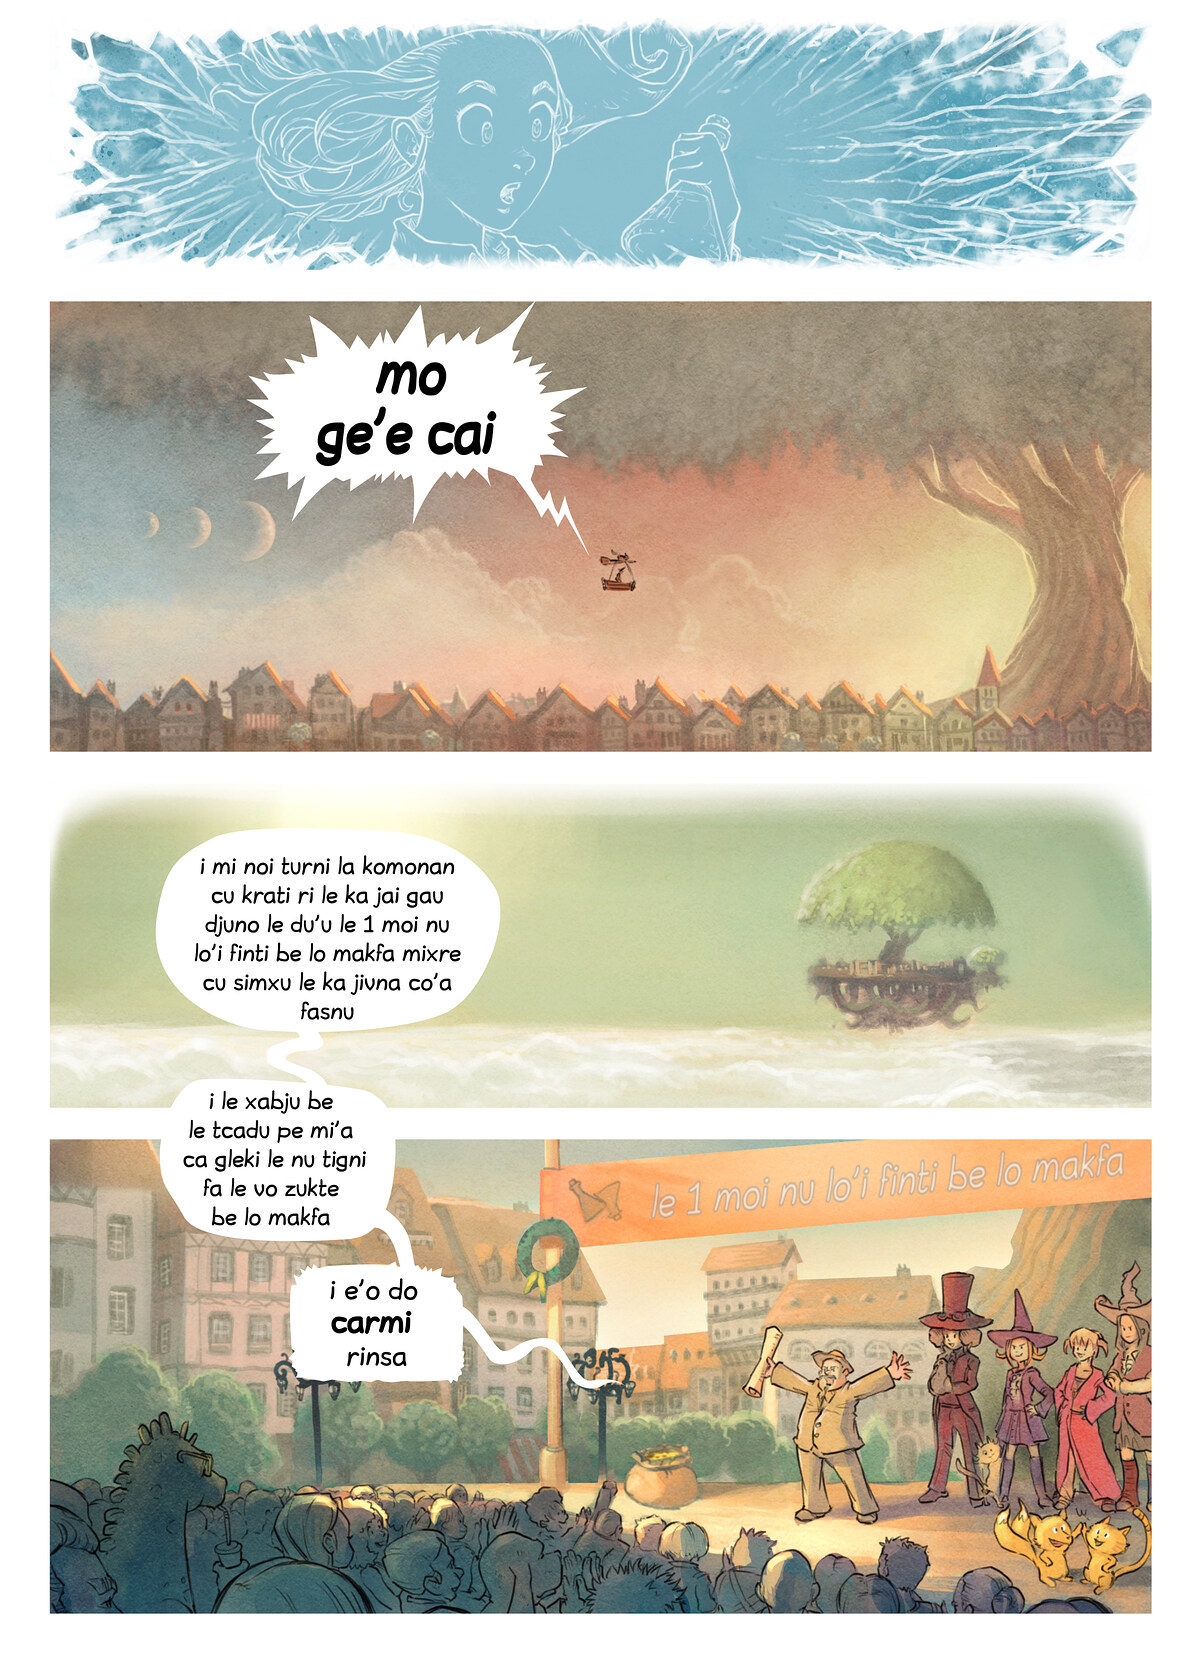 A webcomic page of Pepper&Carrot, pagbu 6 [jb], papri 3